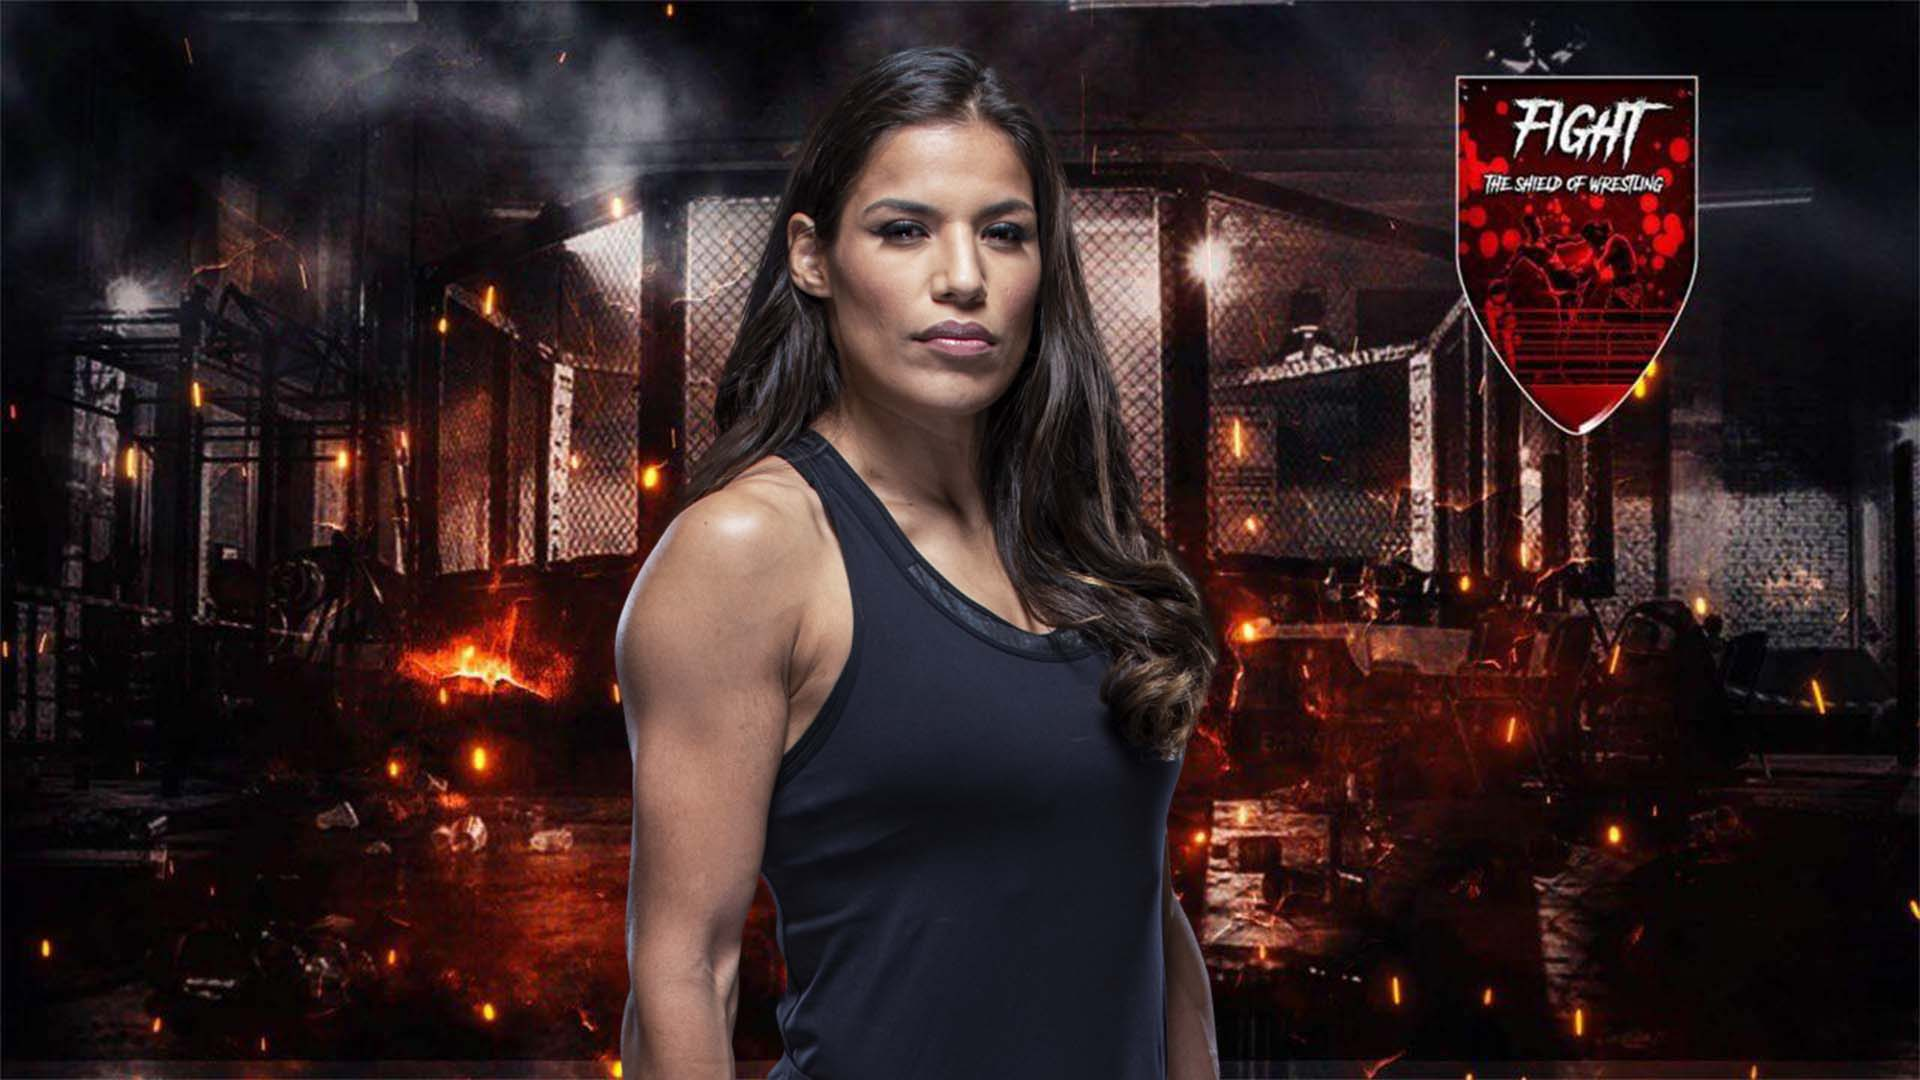 Julianna Pena all'assalto del titolo dei pesi gallo